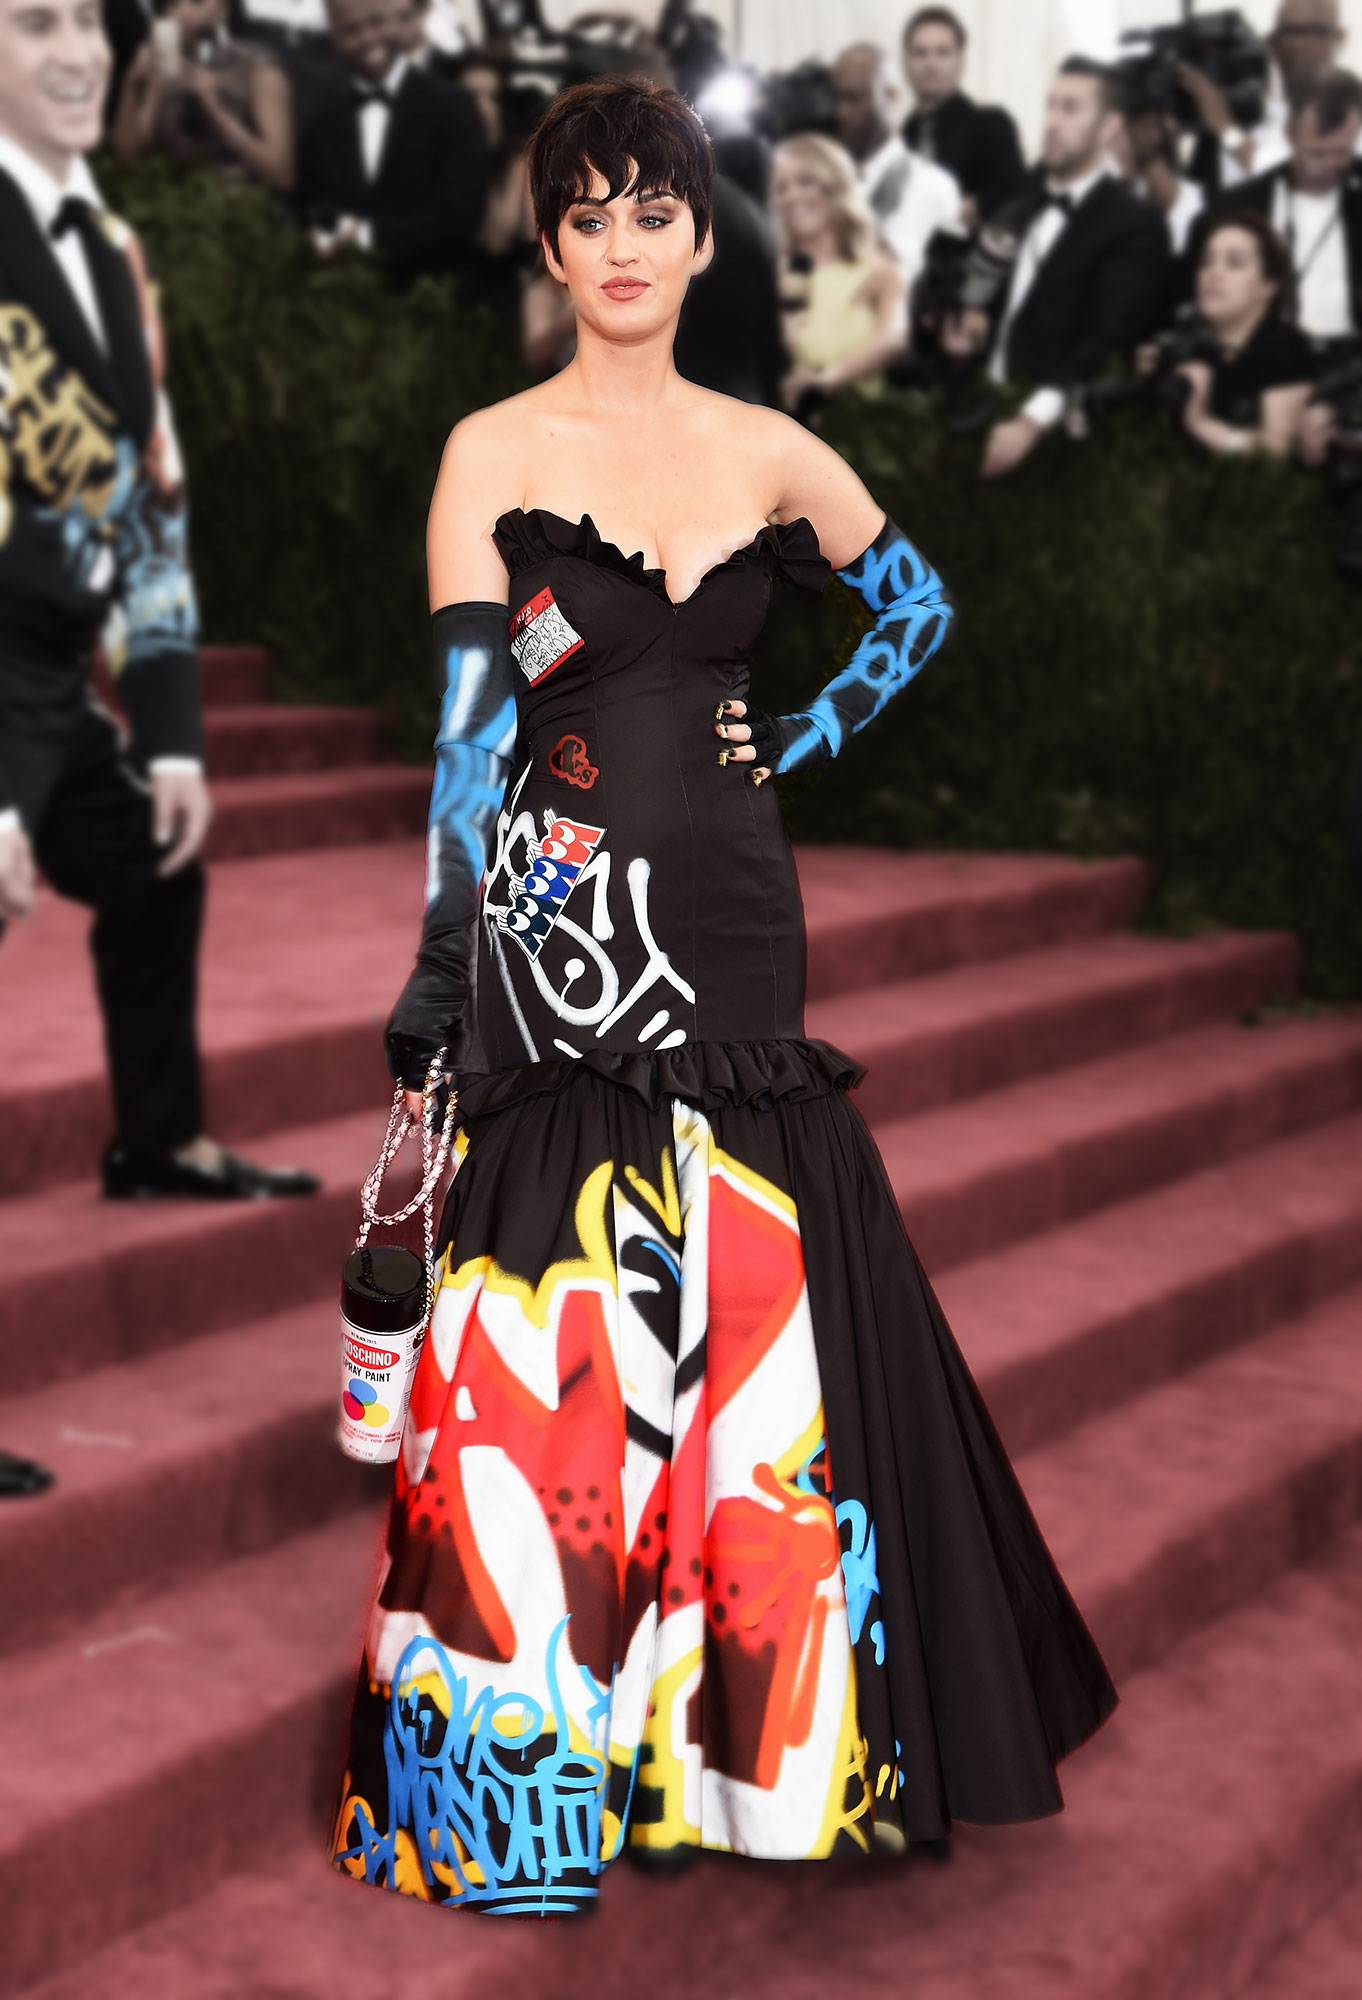 Katy Perry Wore Some of Her Wackiest Outfits Ever to the 2019 Met Gala - Tapping friend Jeremy Scott for her Met Gala look, the brunette beauty went big with black gown covered in graffiti-like print.